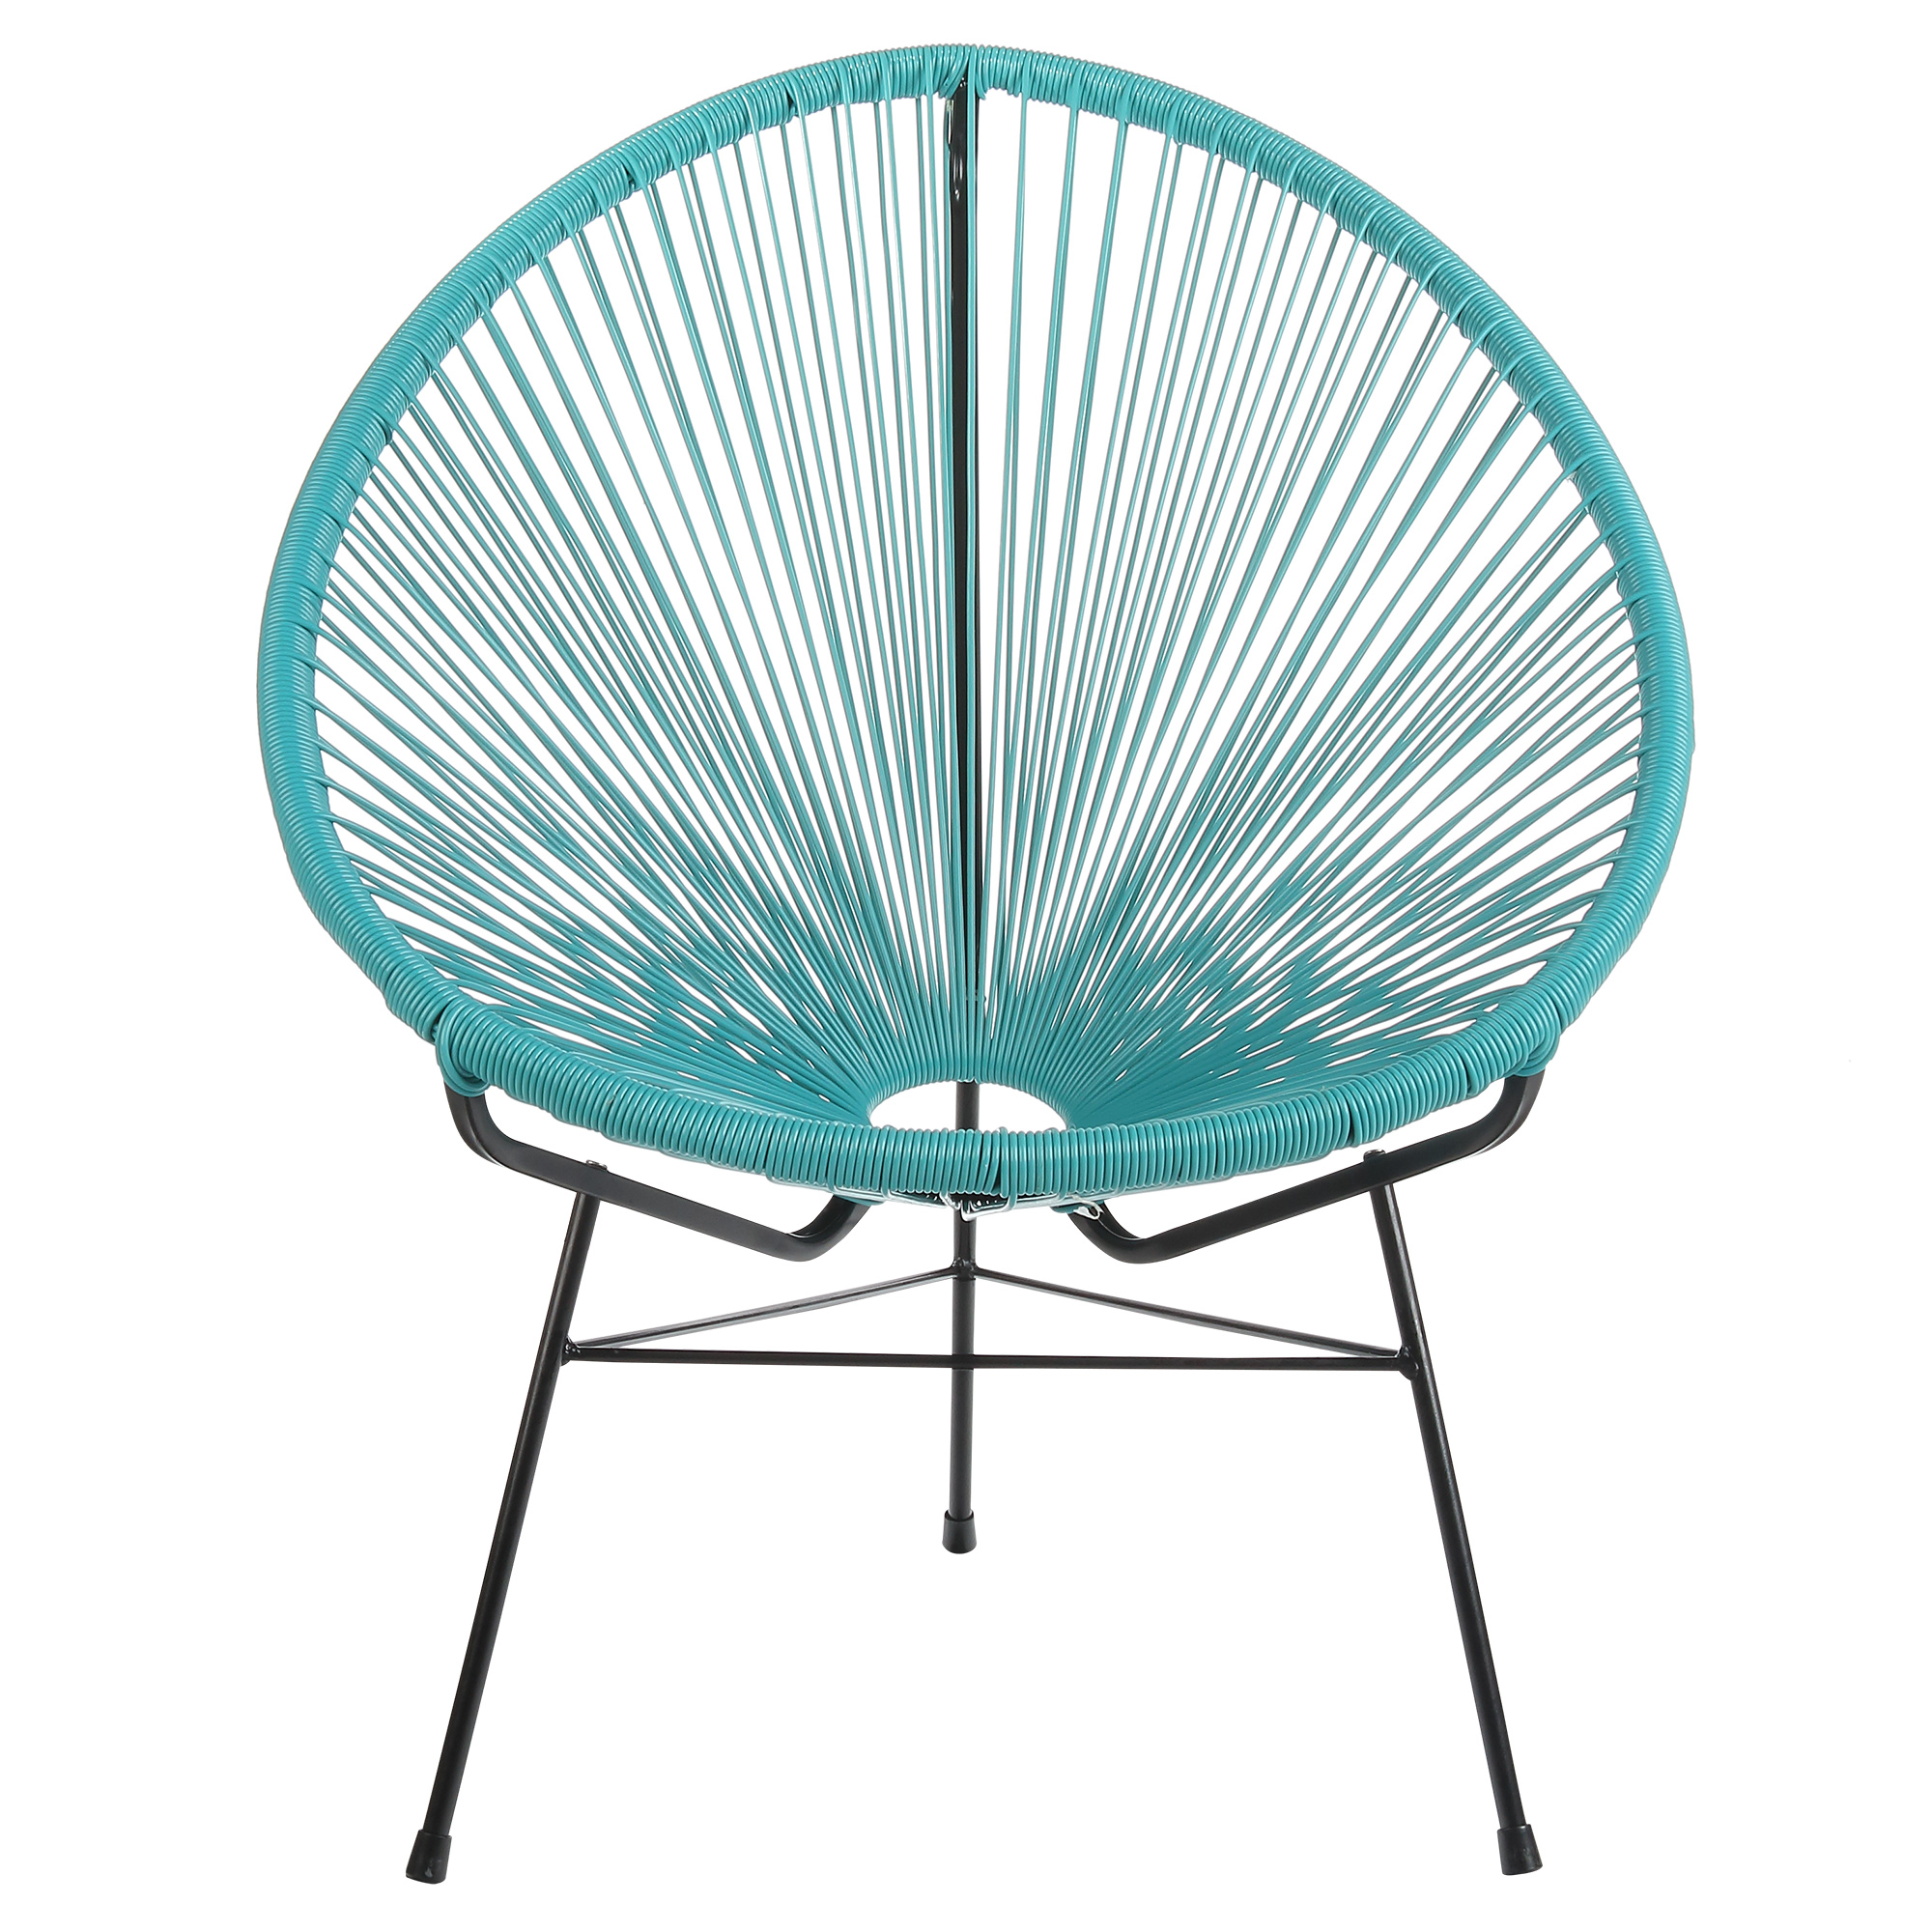 Acapulco Lounge Chair Acapulco Outdoor Lounge Chair Blue Cord Walmart